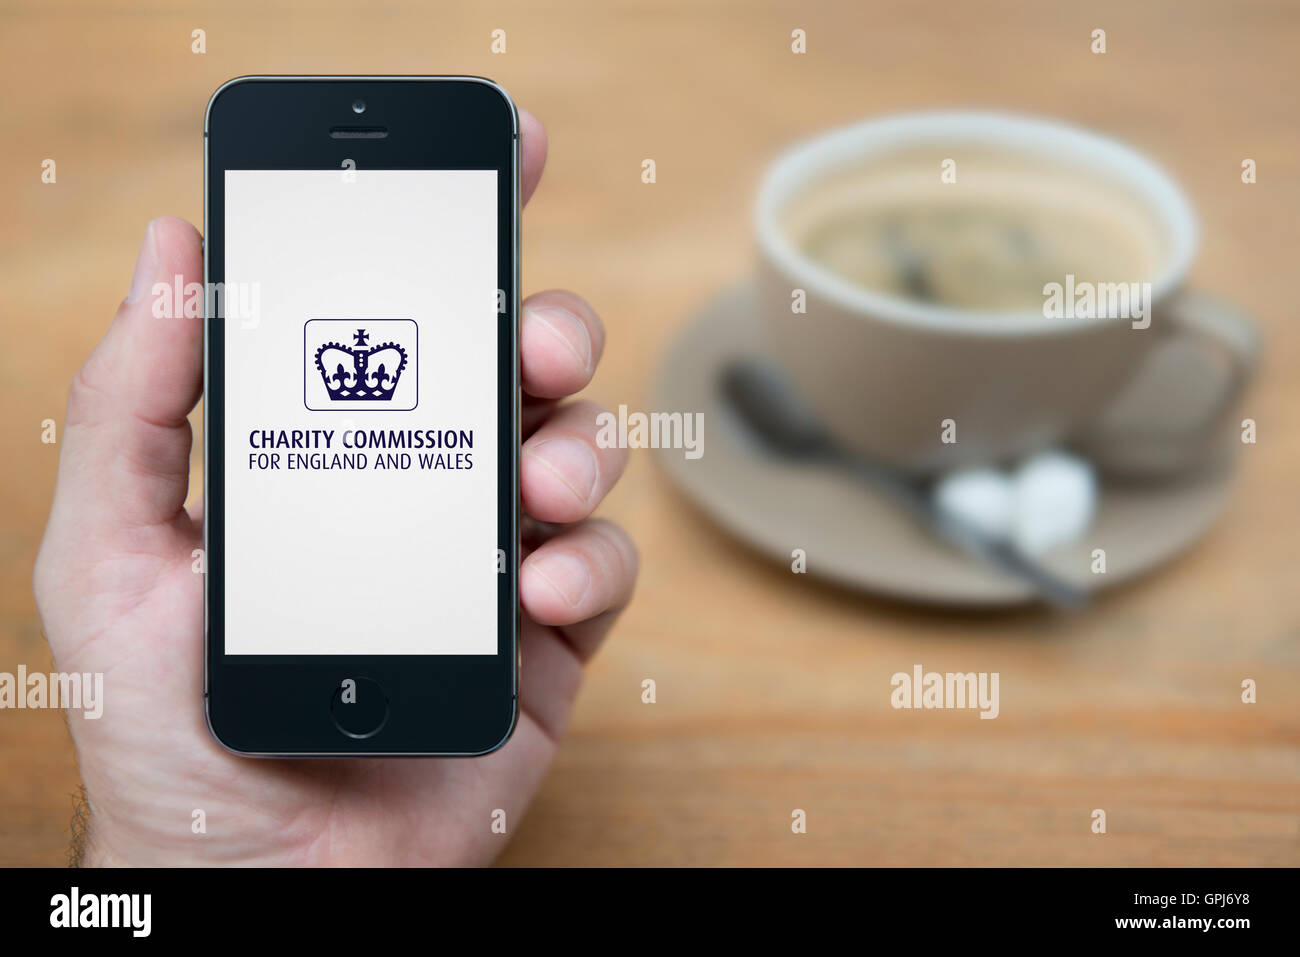 A man looks at his iPhone which displays the UK Government Charity Commission logo, with coffee (Editorial use only). - Stock Image